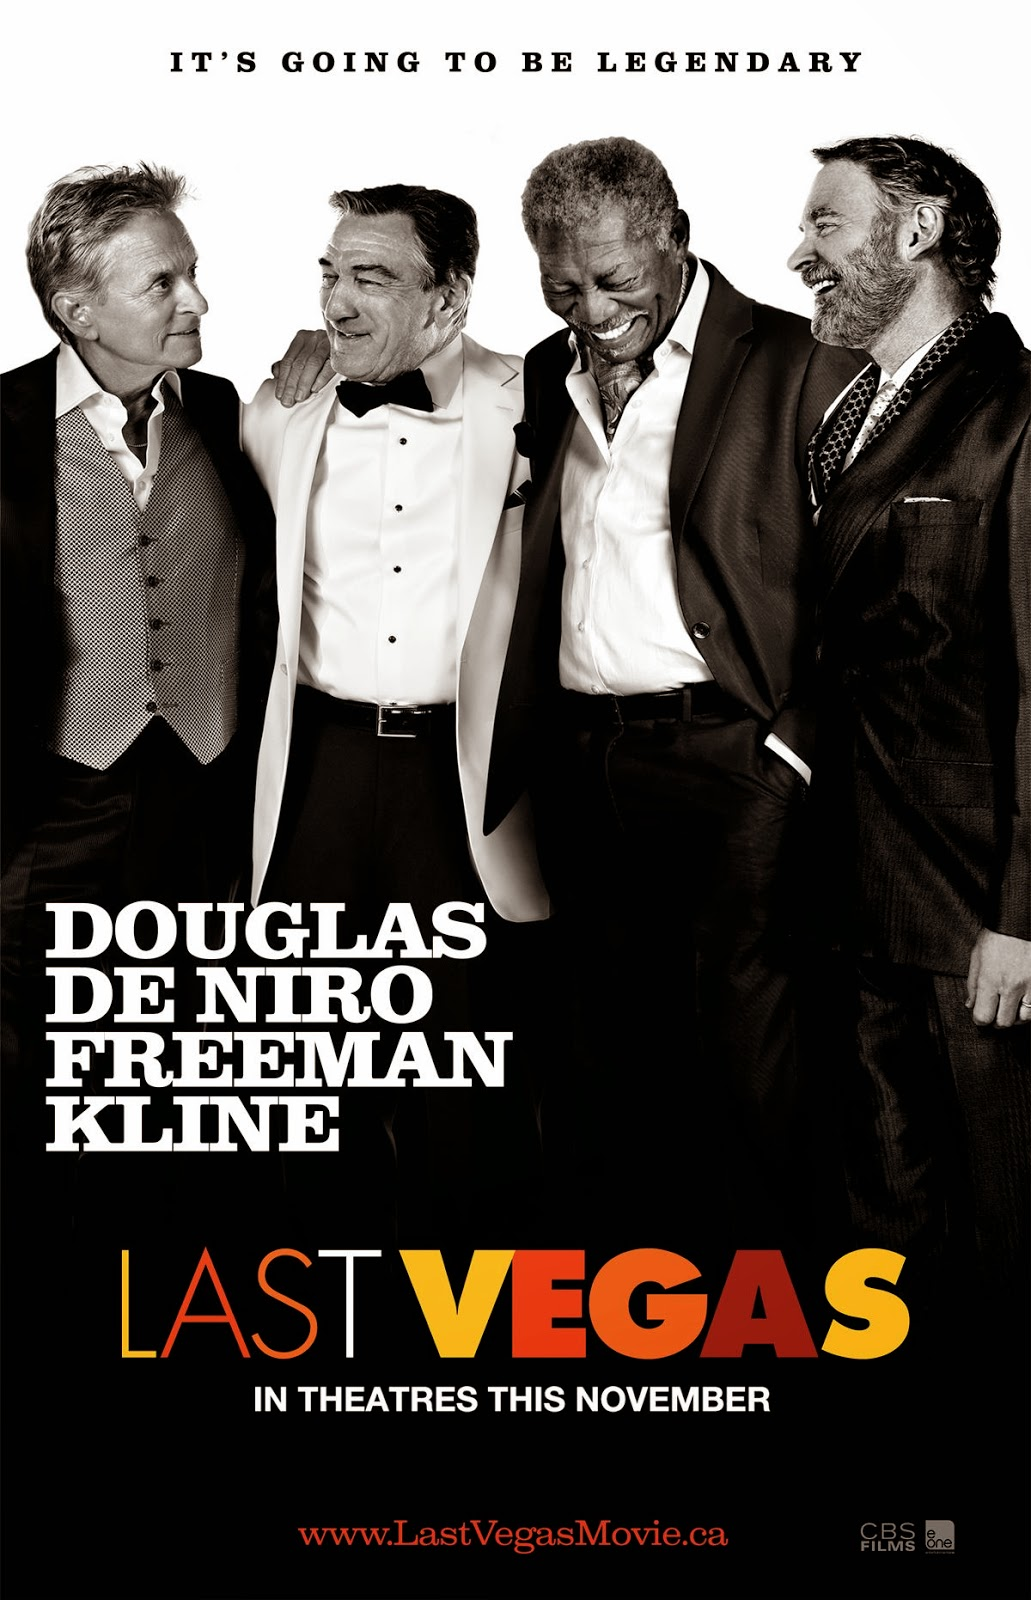 new english moviee 2014 click hear............................. Last+vegas